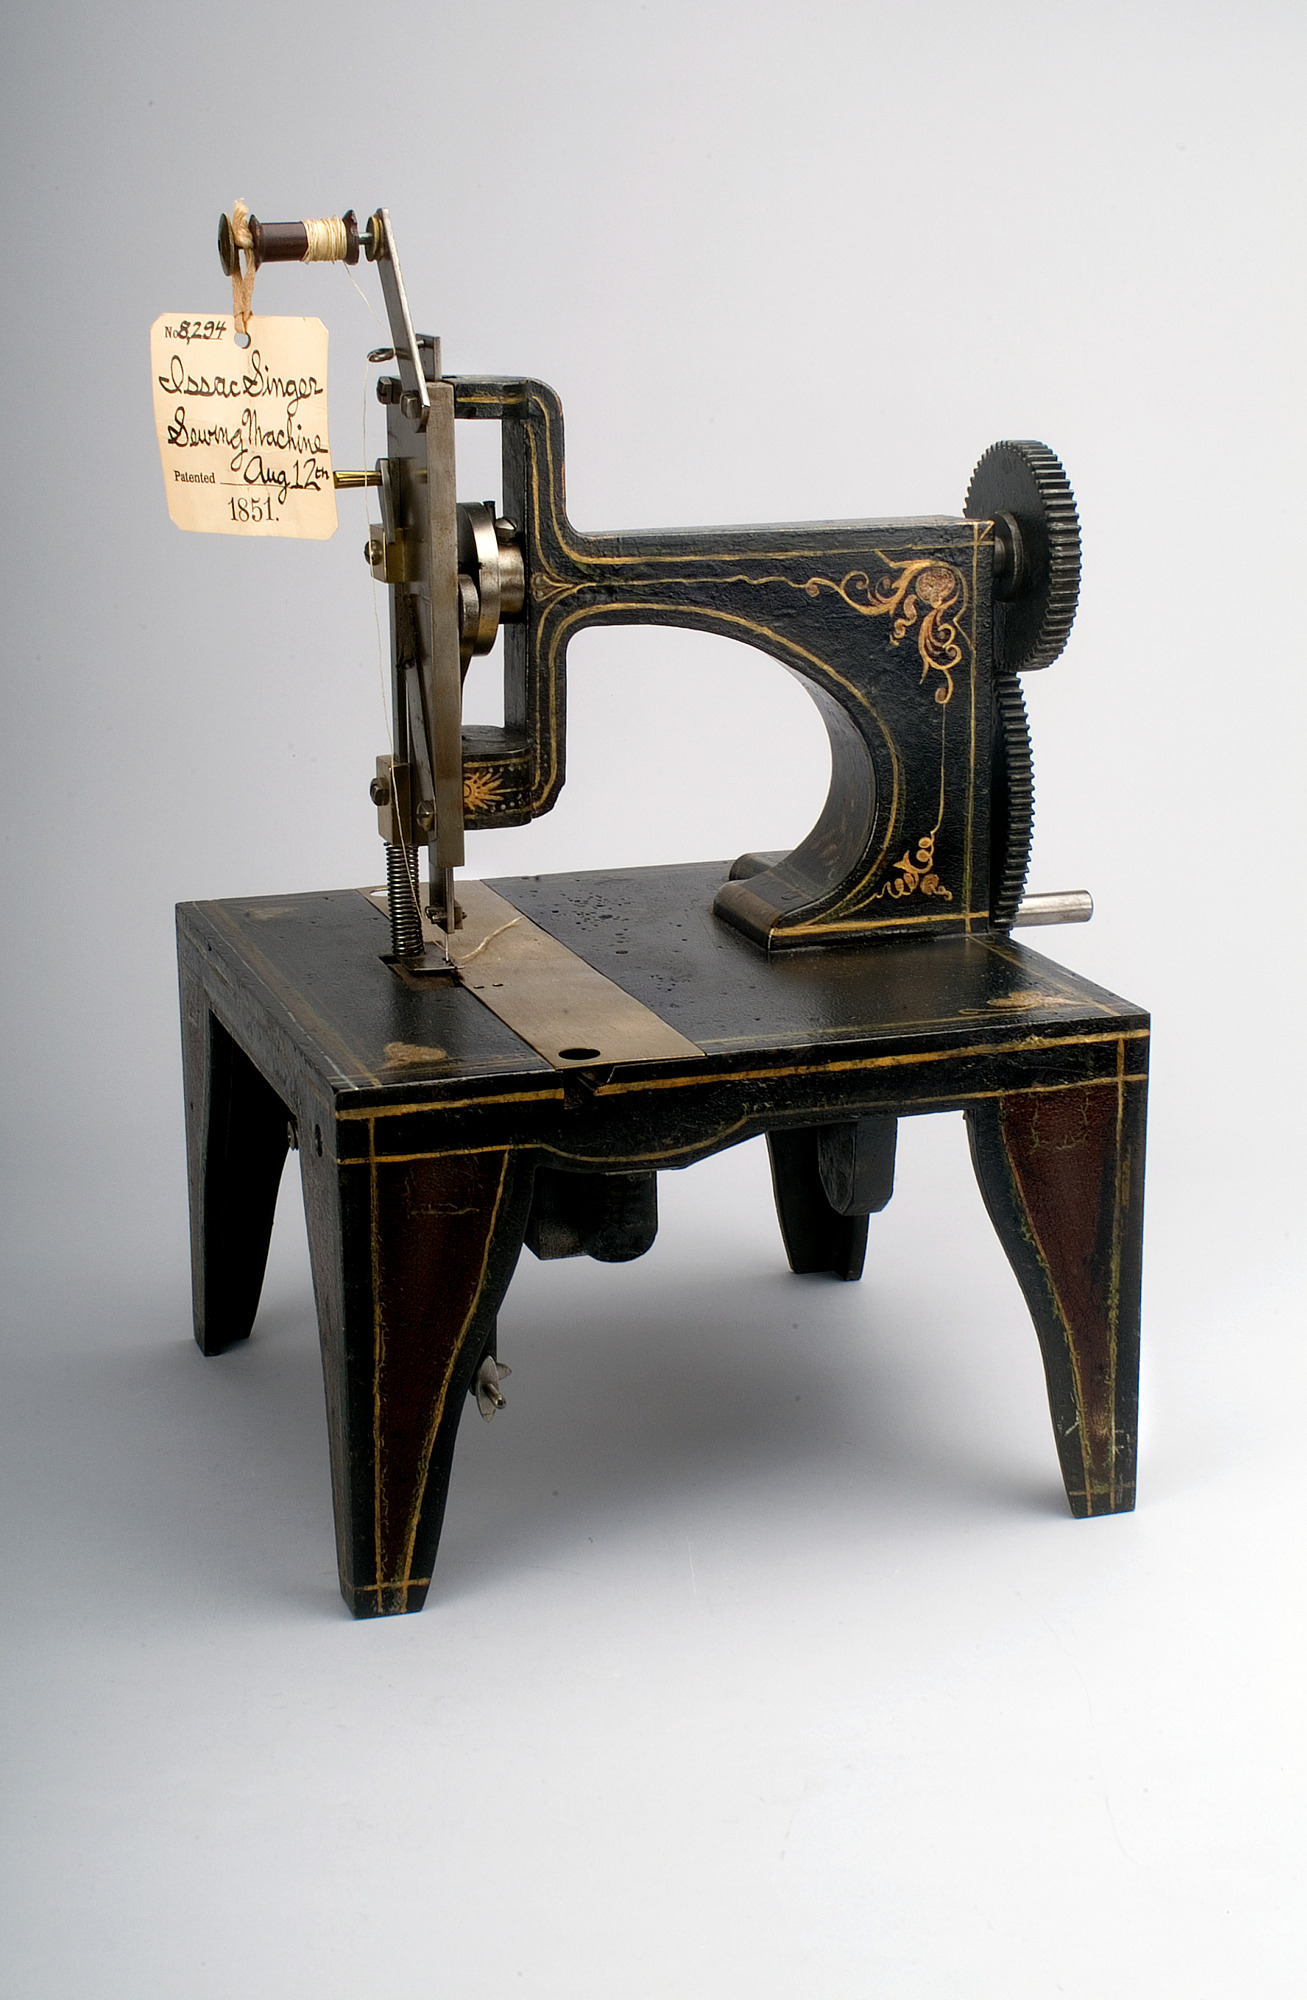 1851 Singer's Sewing Machine Patent Model | National Museum